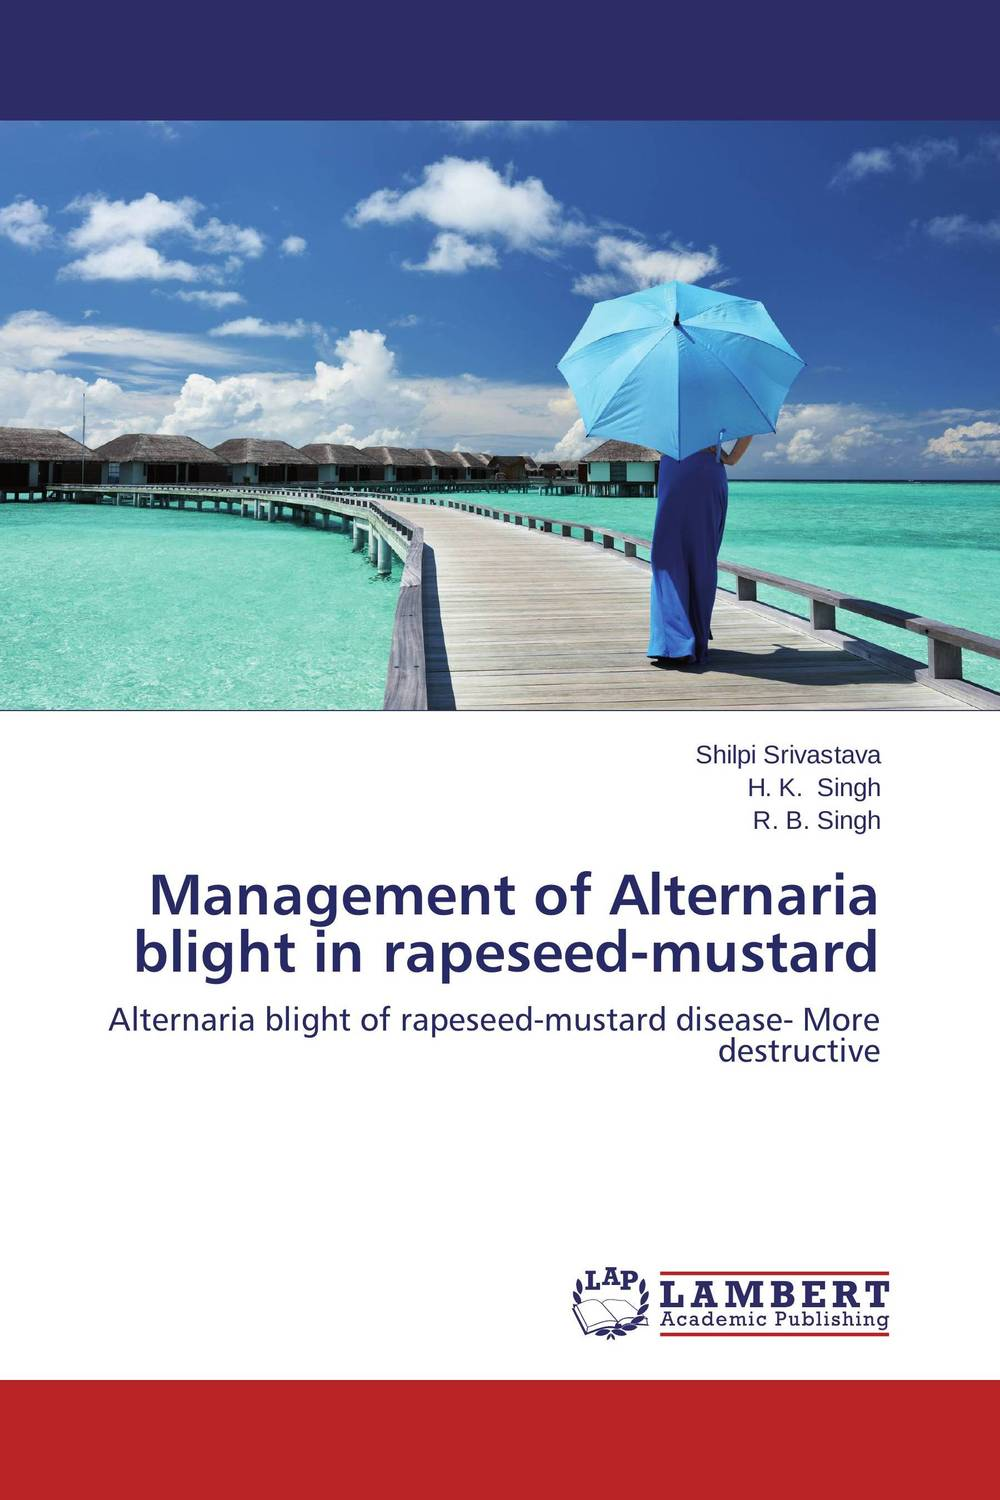 Management of Alternaria blight in rapeseed-mustard fungicidal management of sheath blight of rice